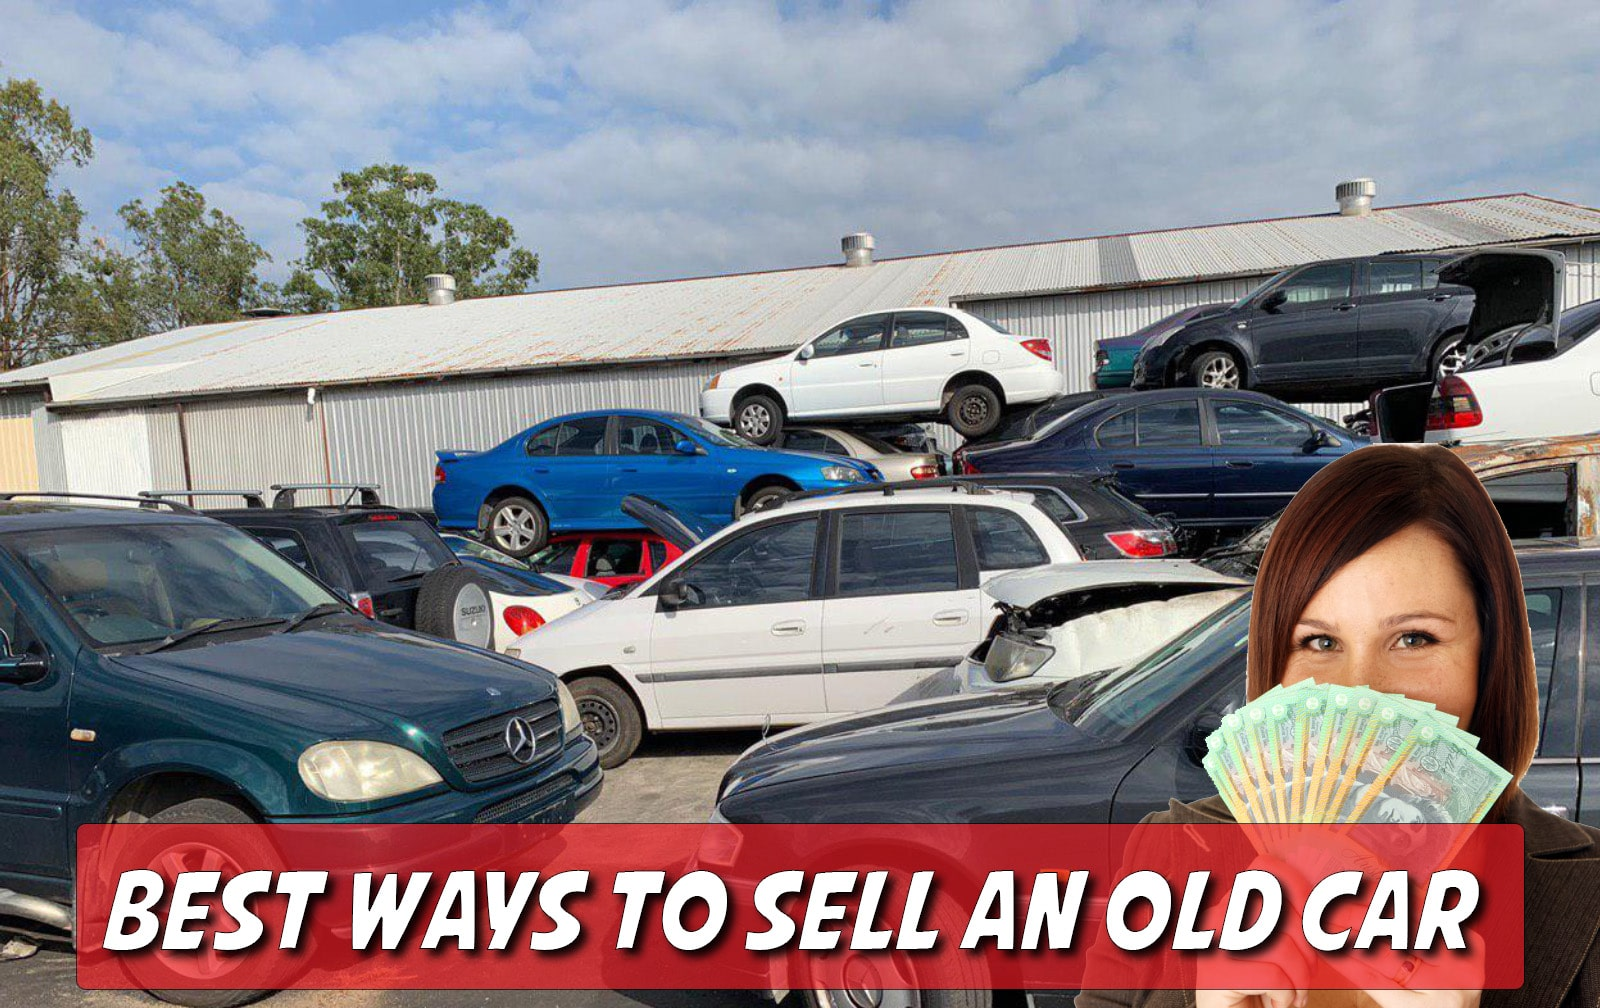 Best Way to Sell Old Car